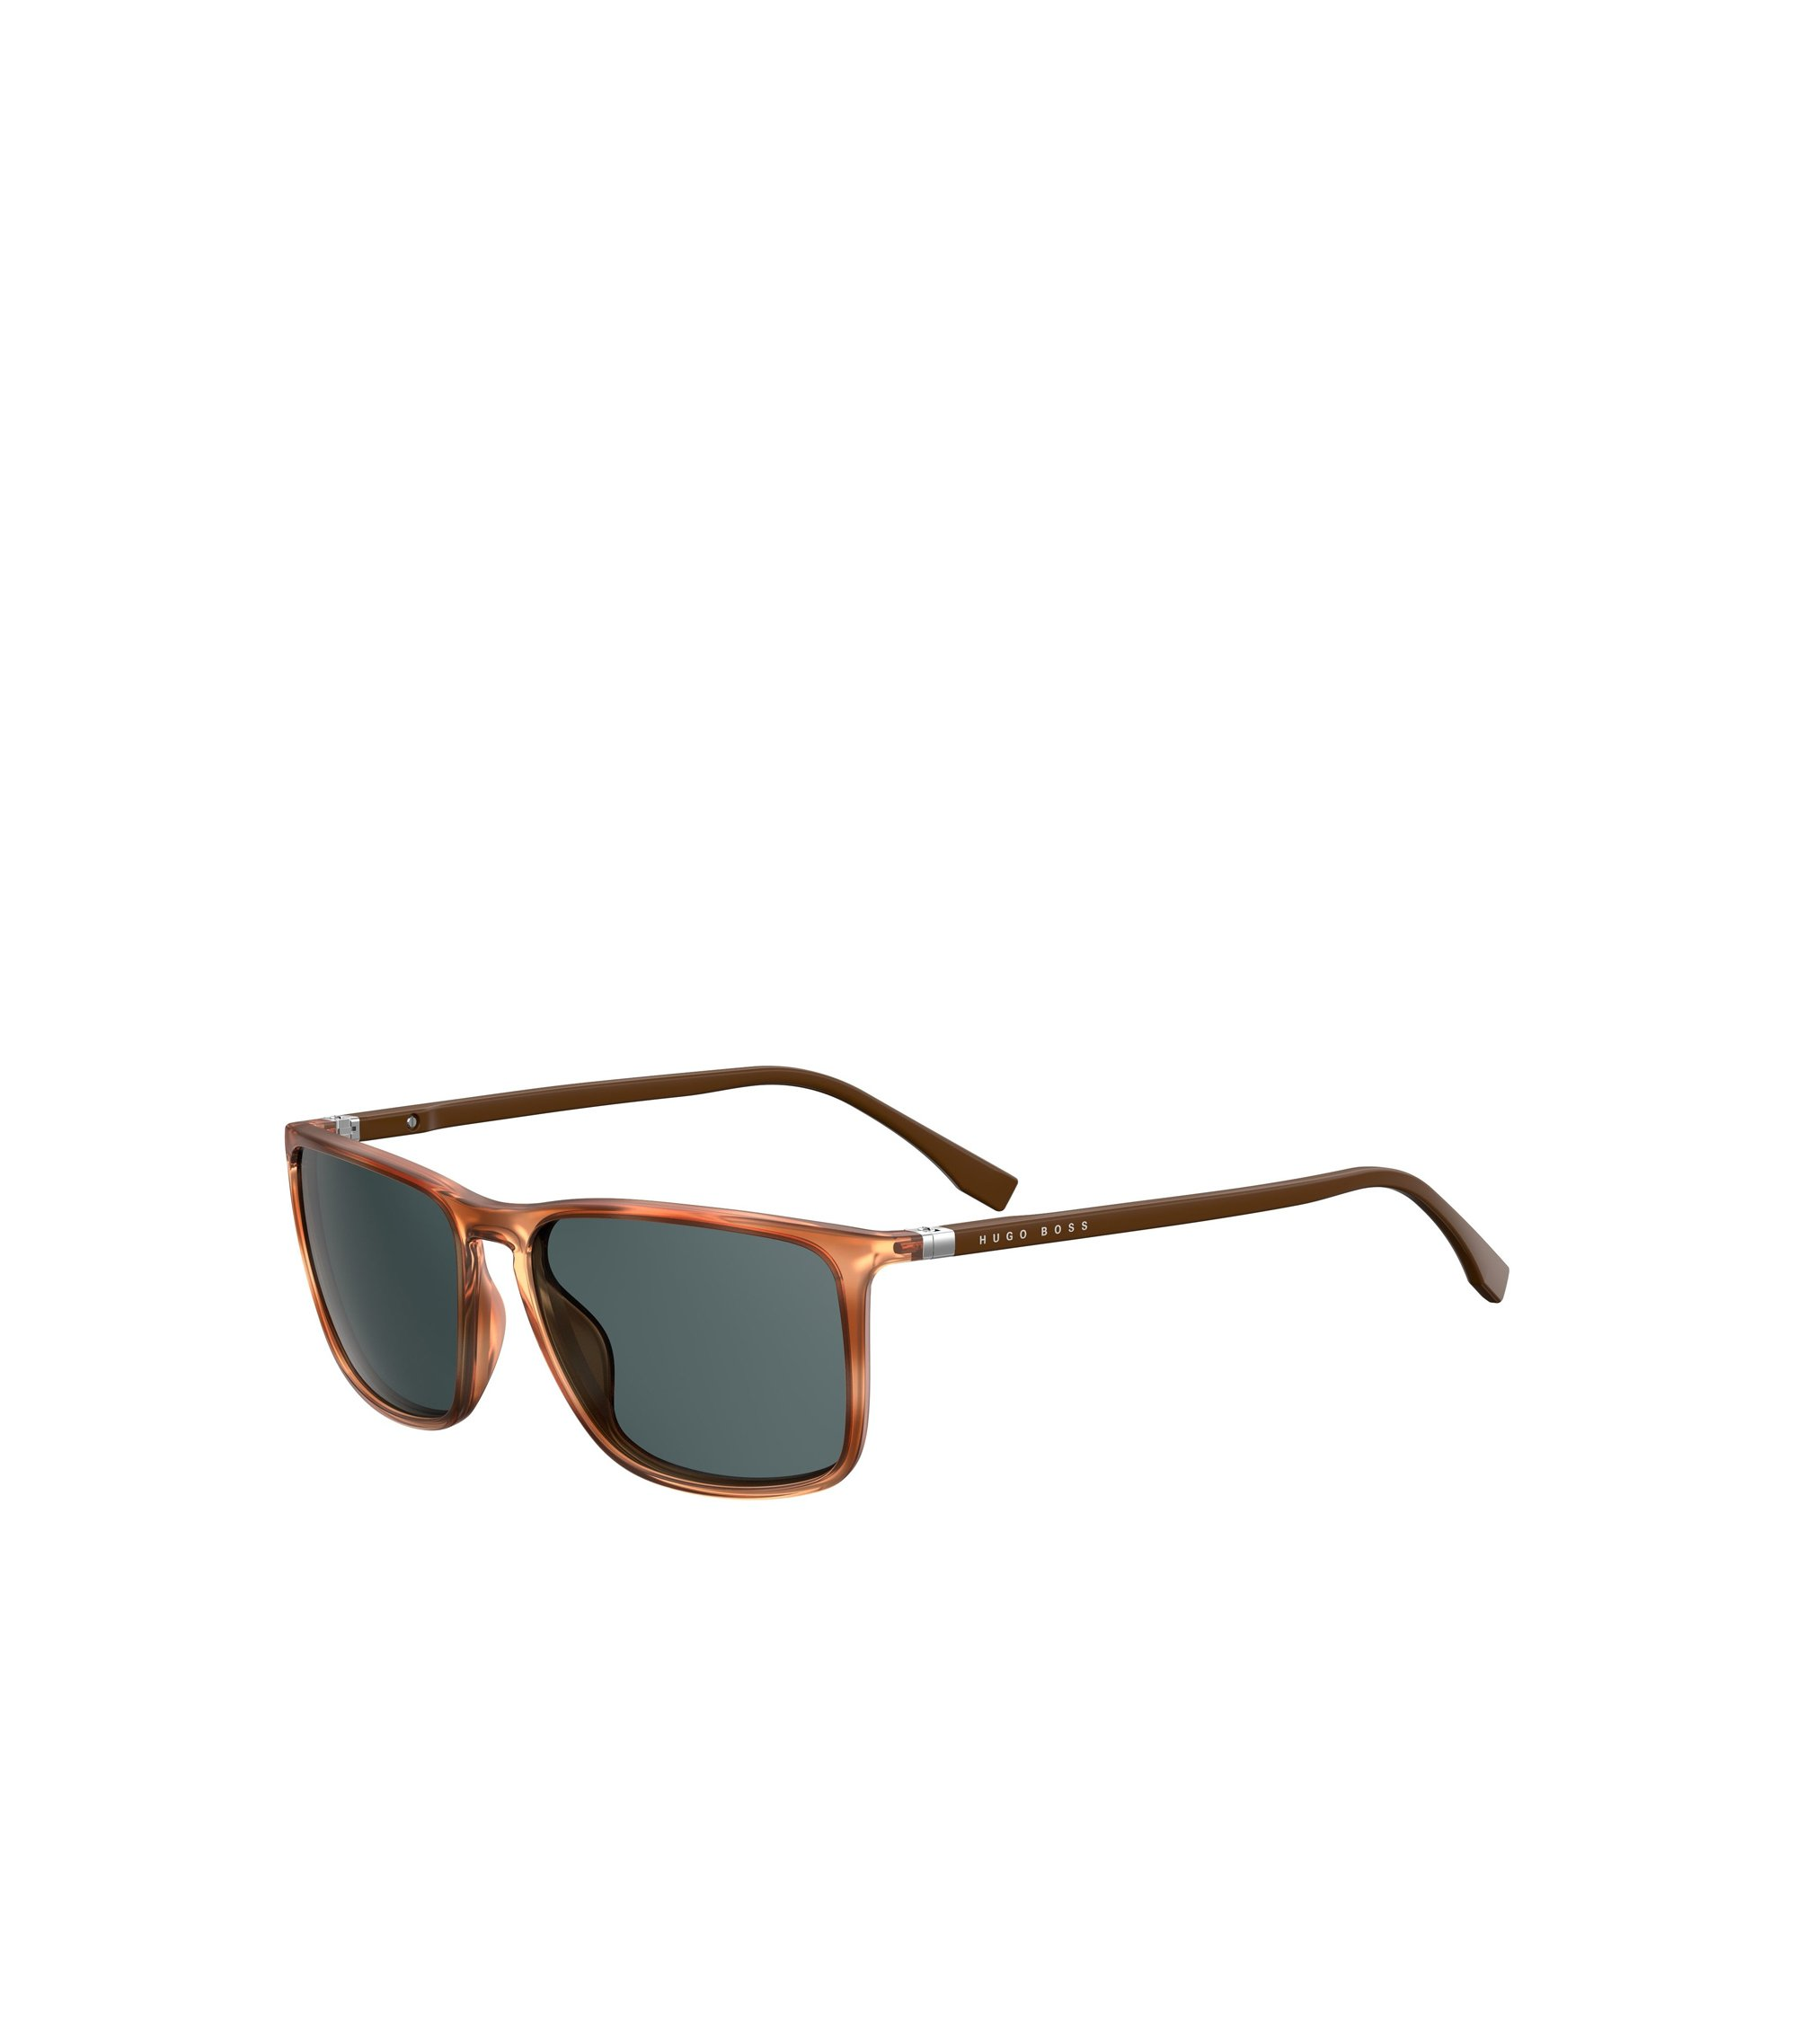 Grey Lens Rectangular Sunglasses | BOSS 0665S, Assorted-Pre-Pack